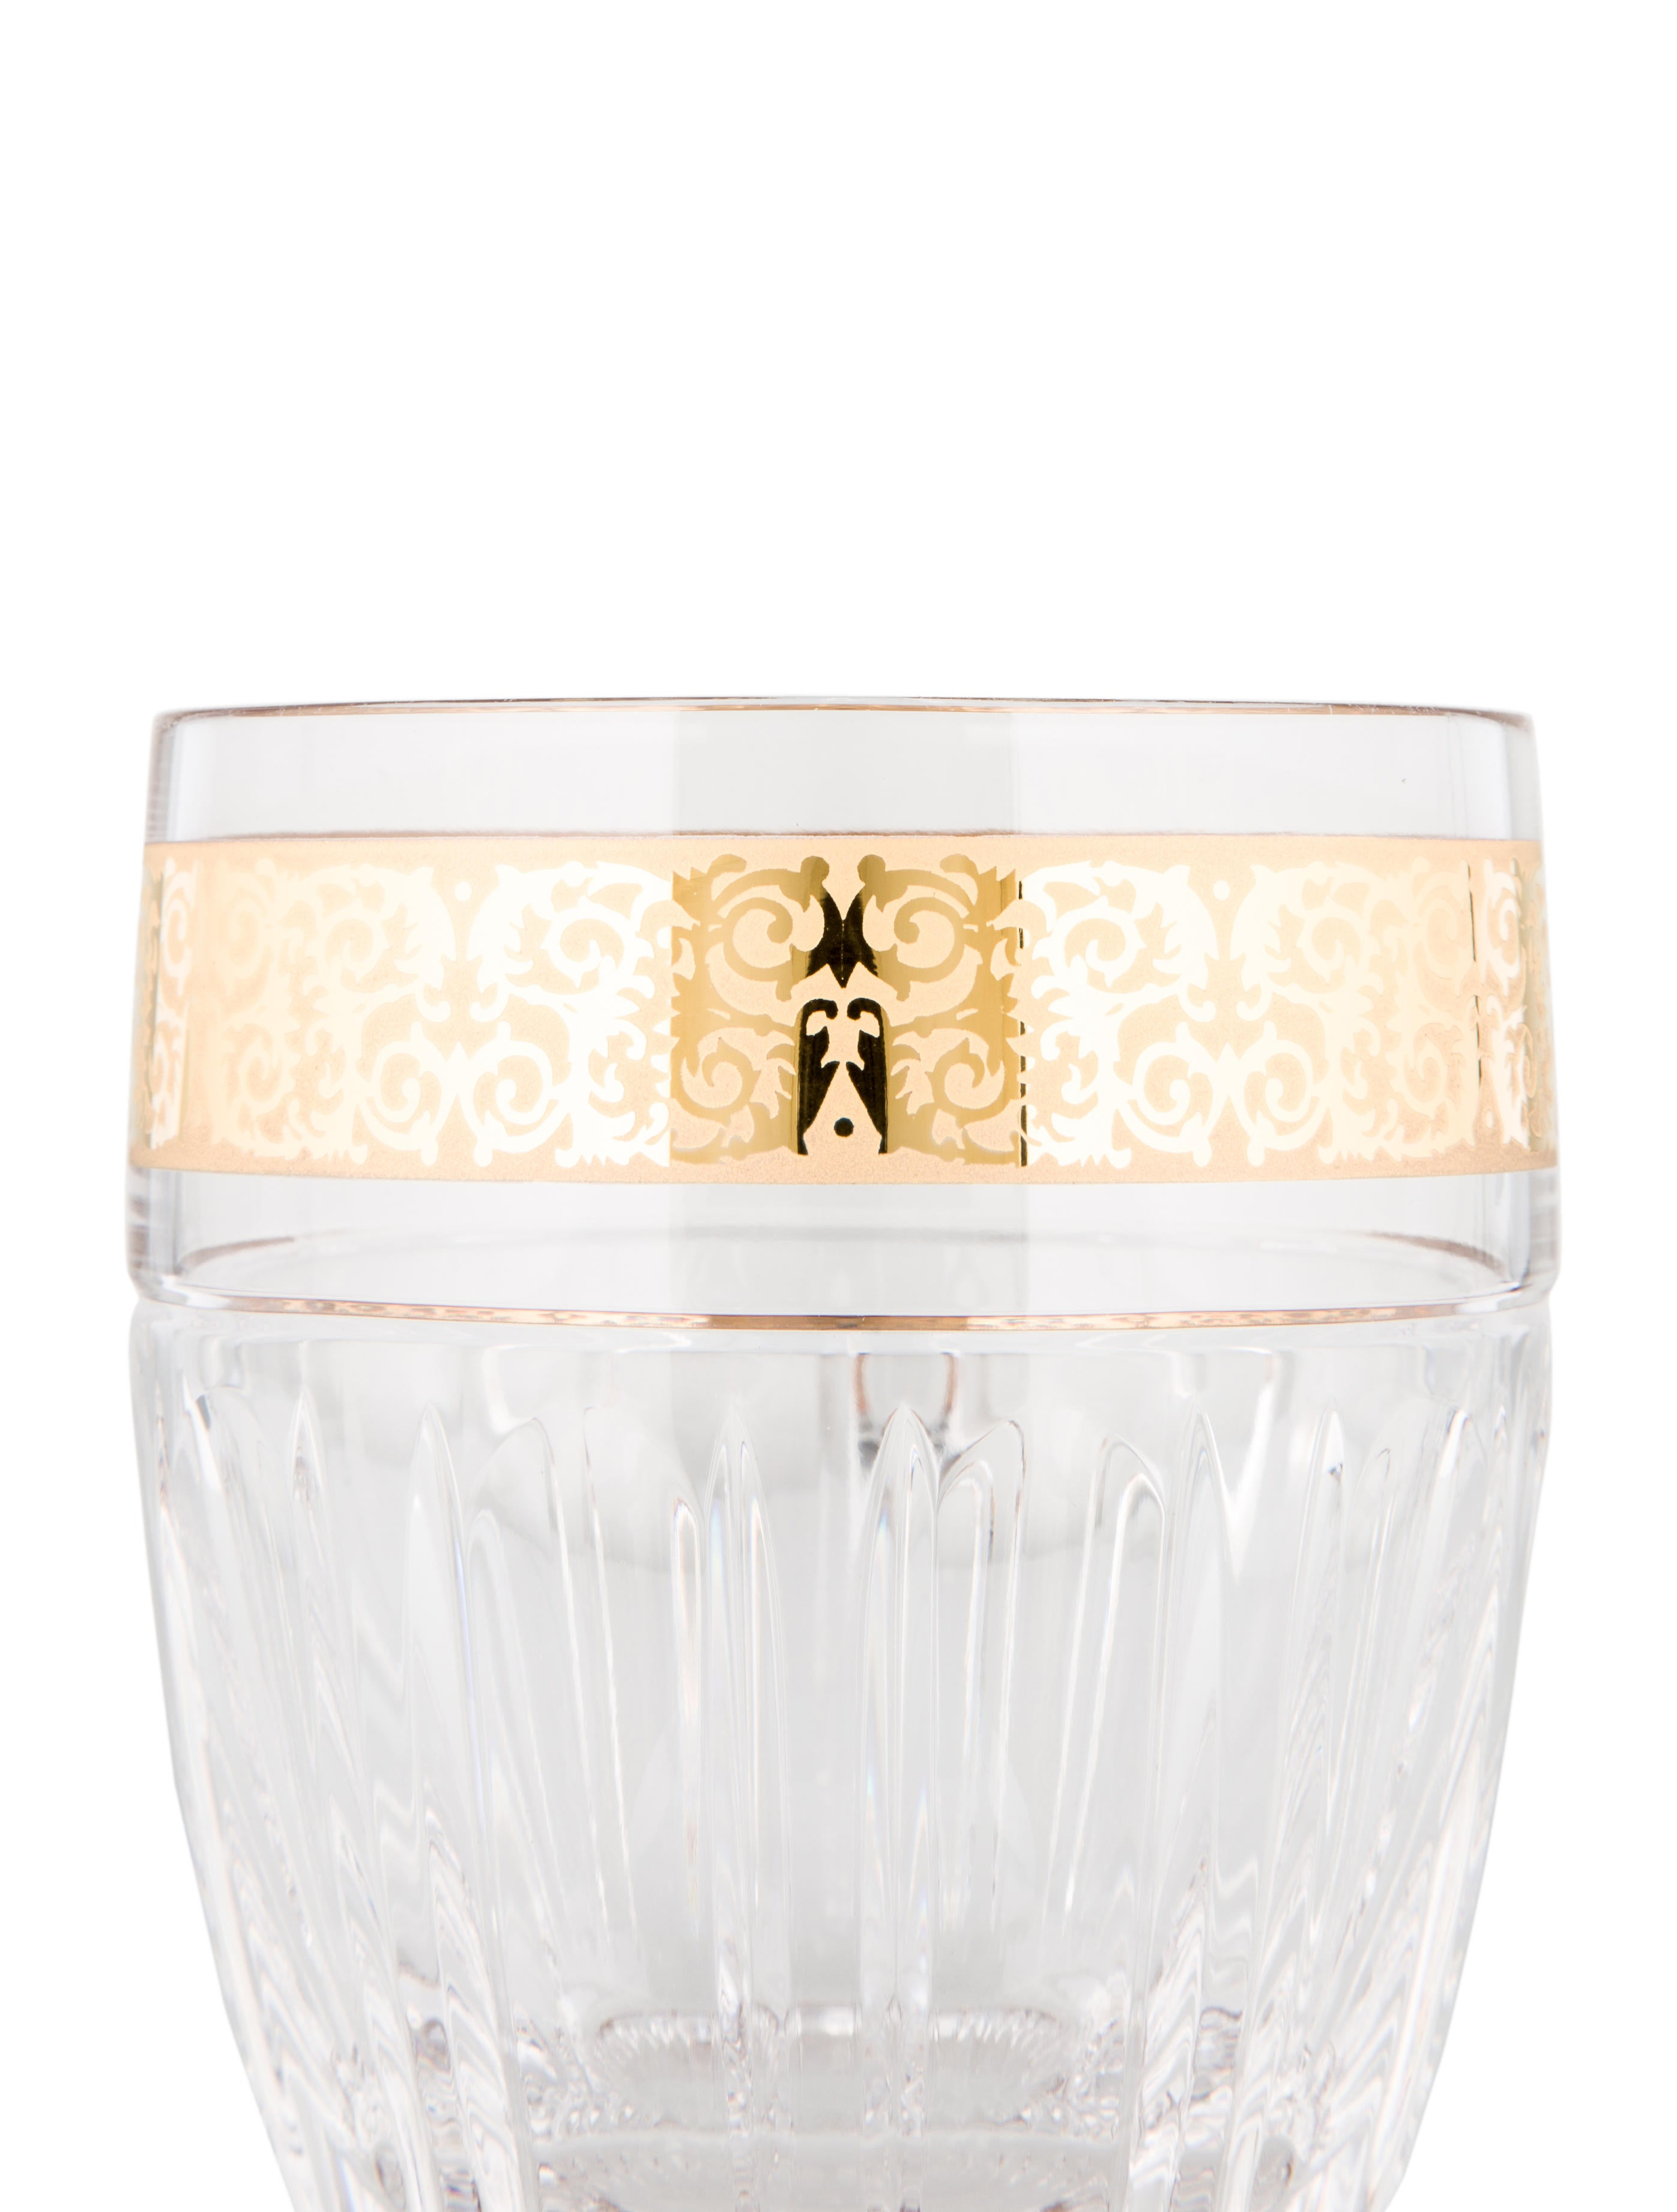 Rosenthal Meets Versace Gala Prestige Whiskey Glass  : RMV202592enlarged from www.therealreal.com size 2793 x 3685 jpeg 347kB